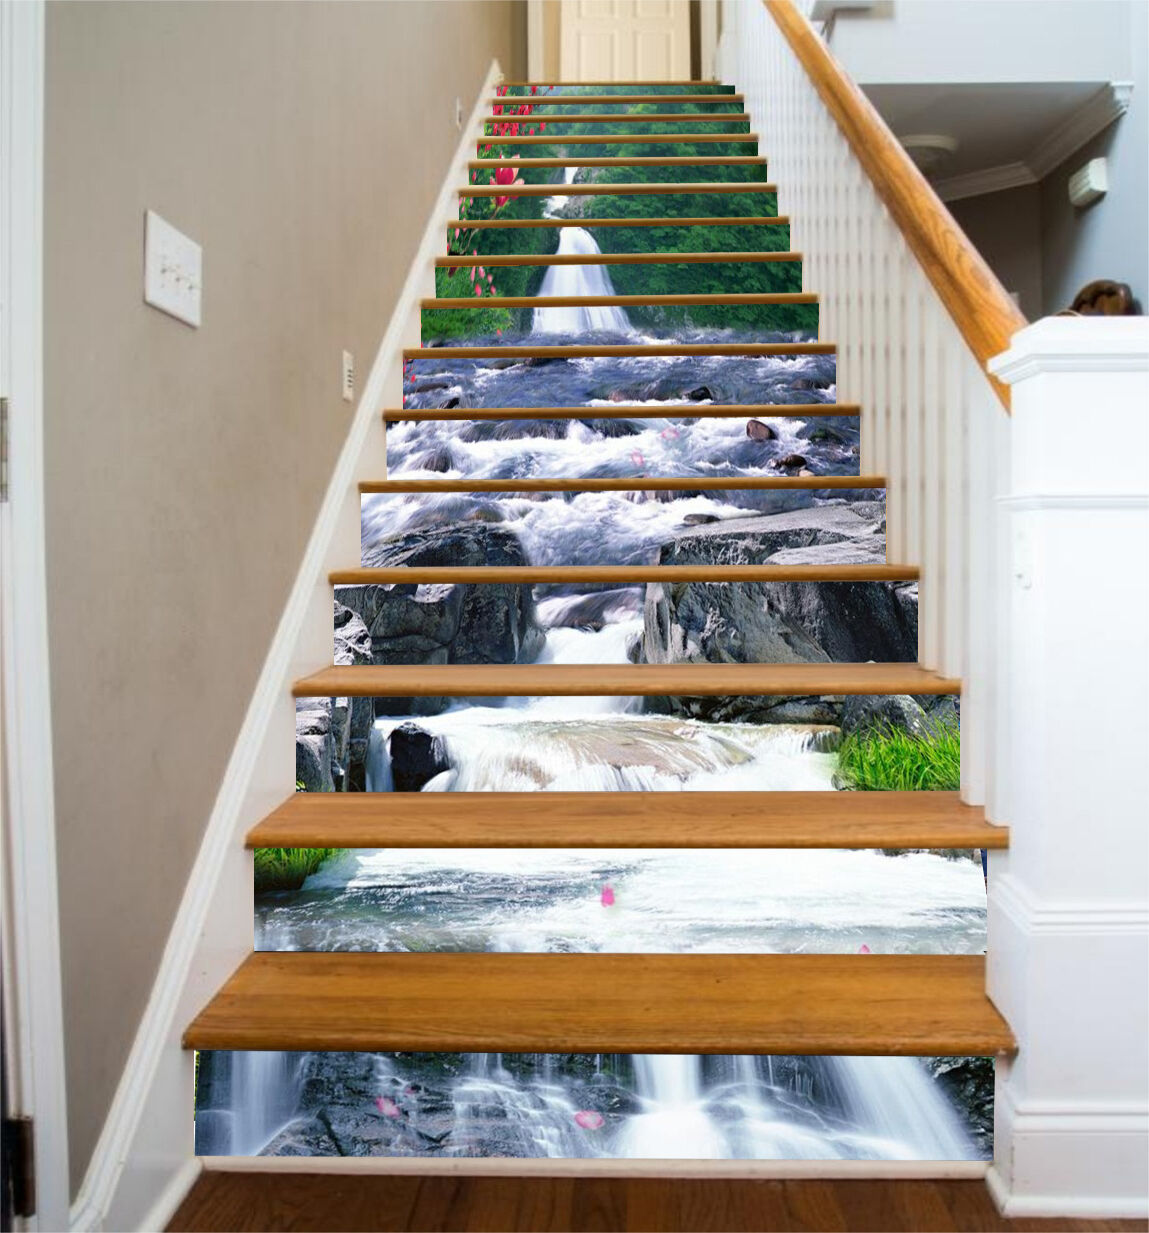 3D Stone water 3663 Stair Risers Decoration Photo Mural Vinyl Decal Wallpaper AU